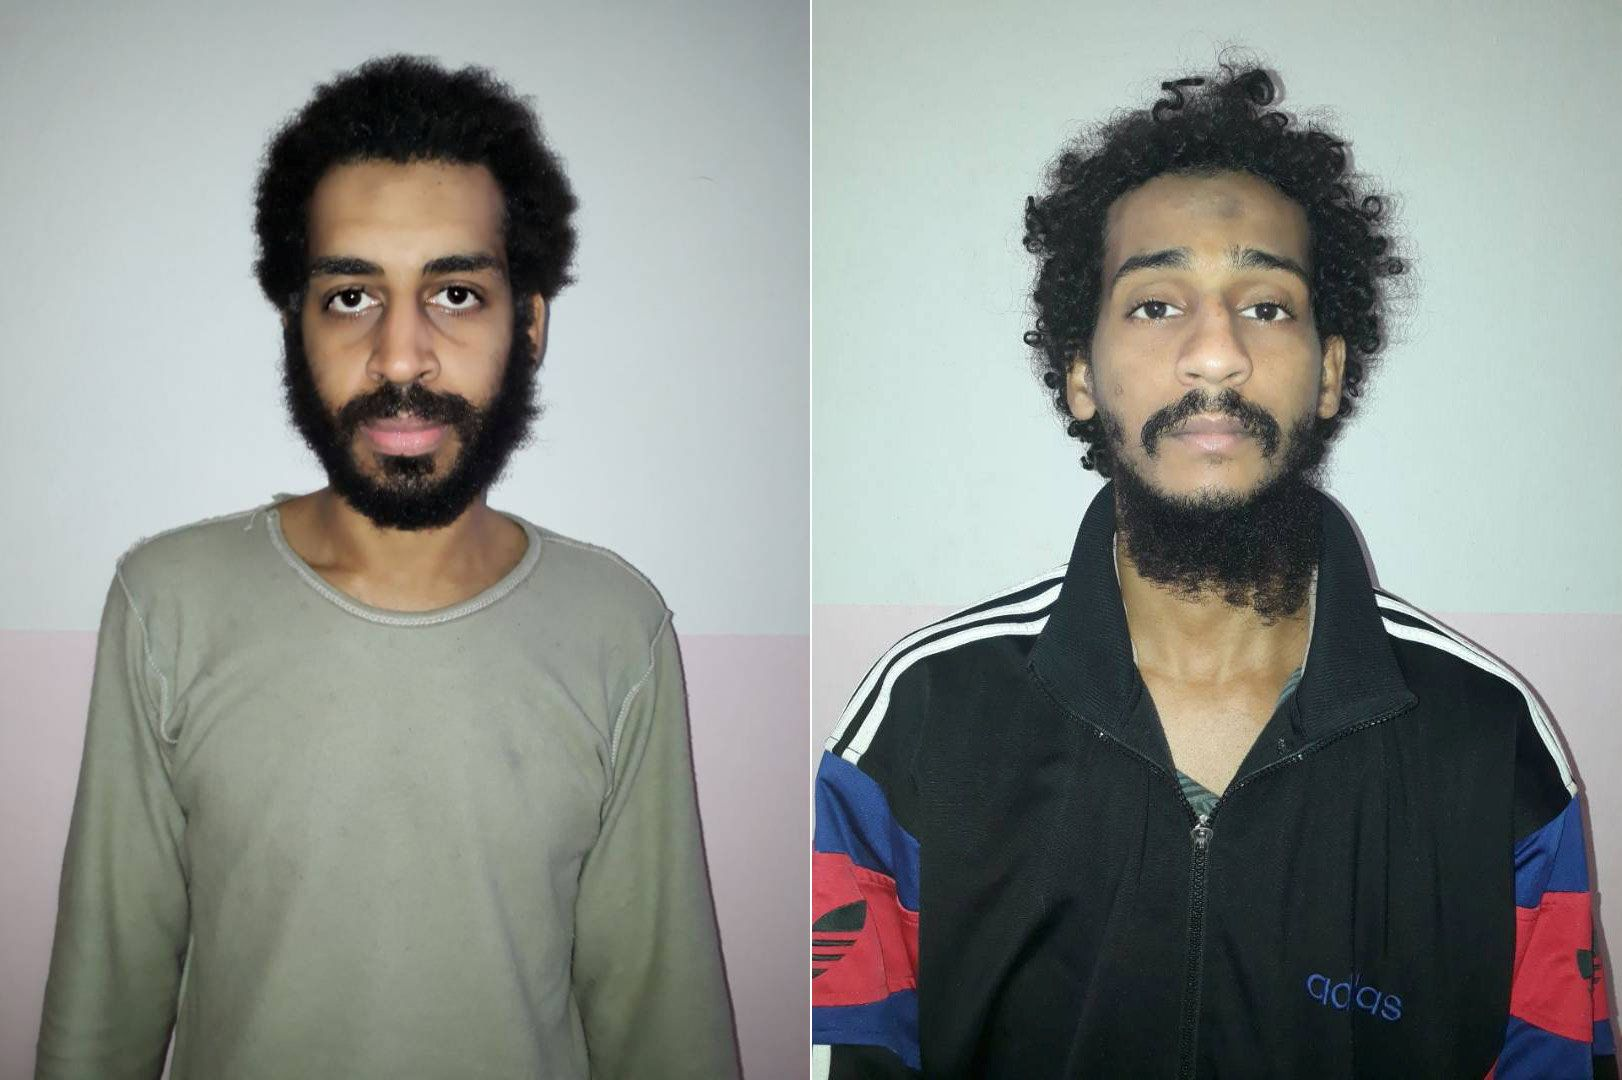 Isil 'Beatles' say fair trial is impossible in Britain